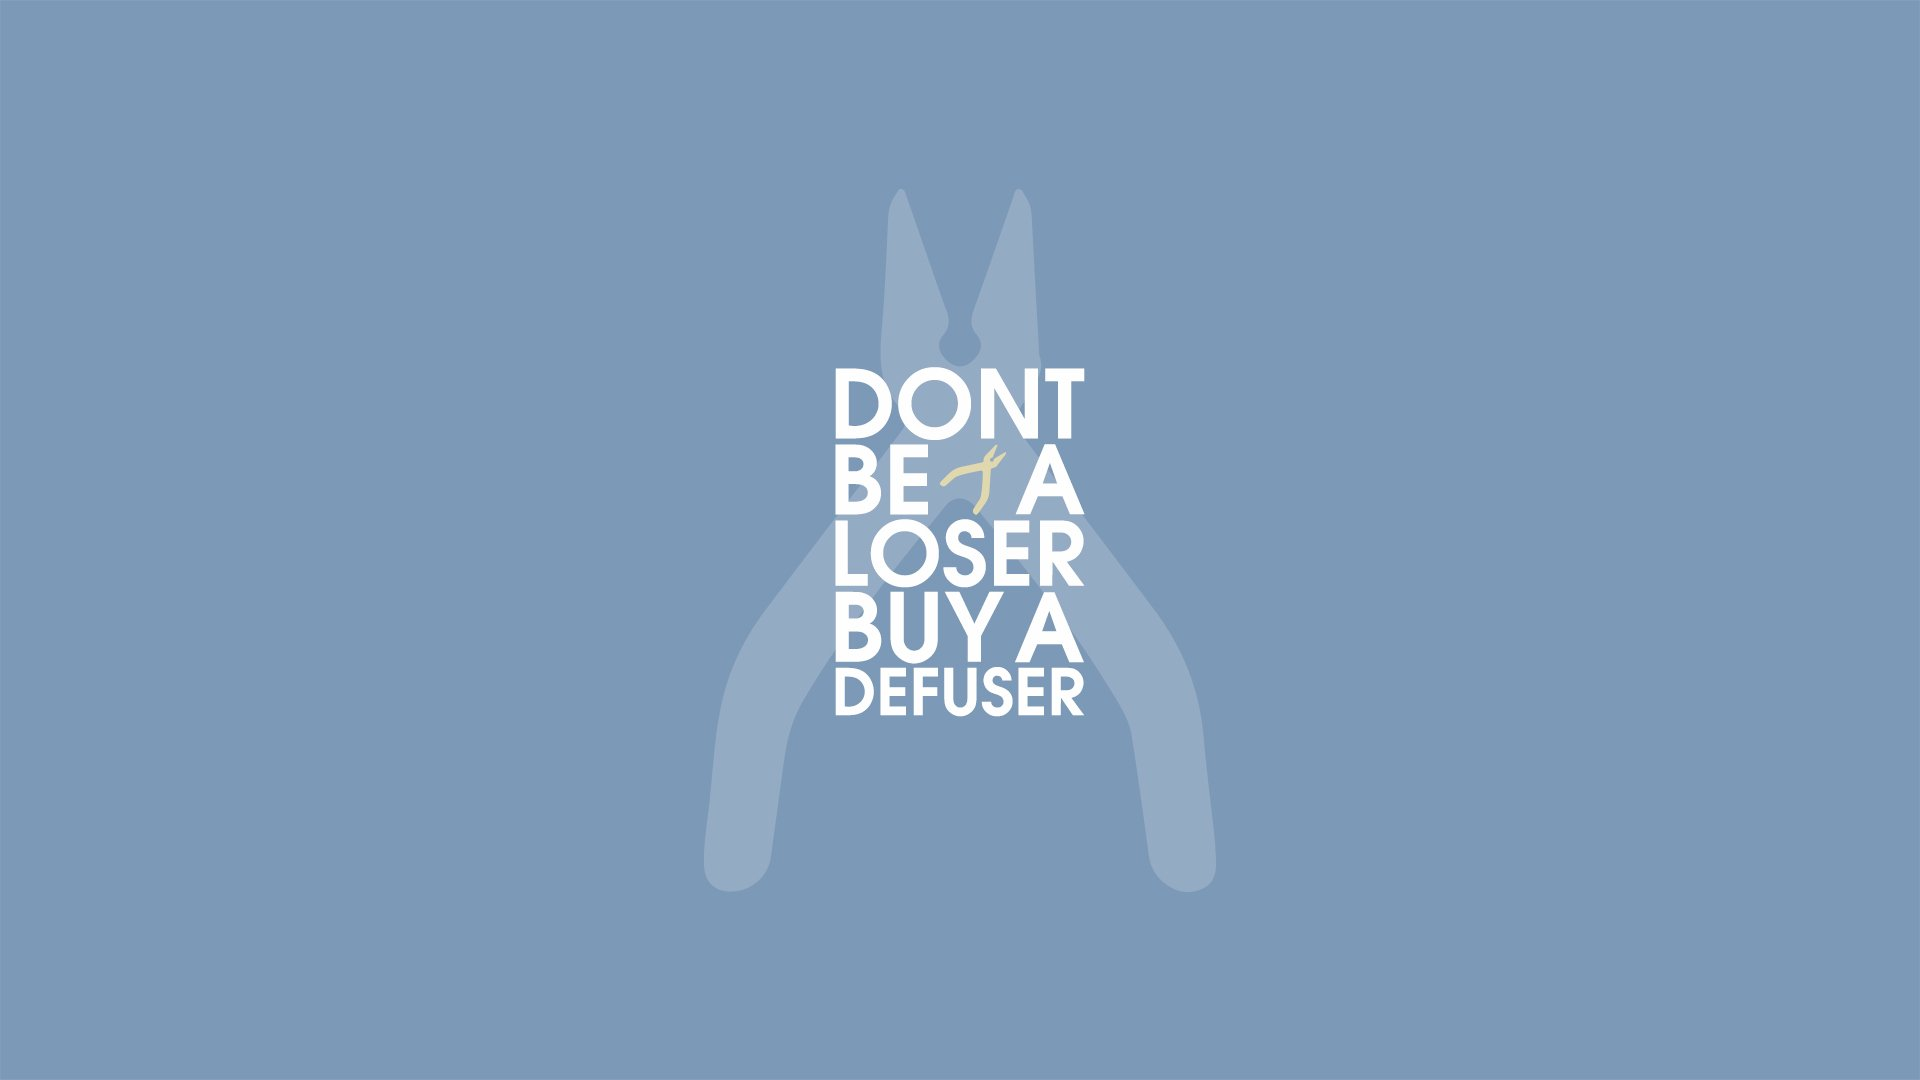 Don't be a loser, buy a defuser